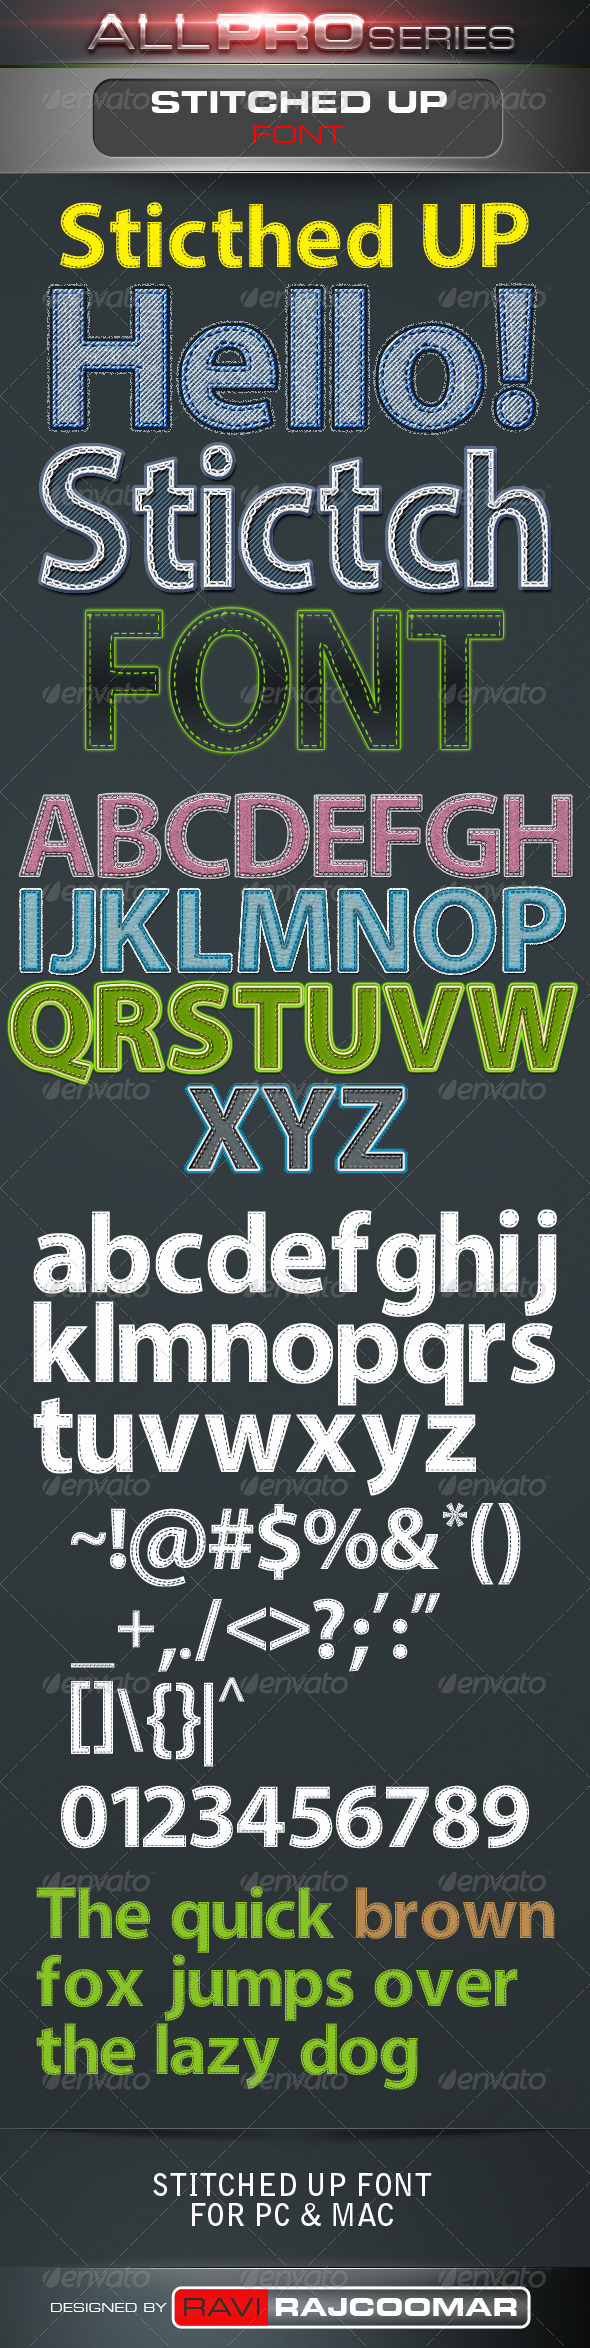 GraphicRiver Stitched UP Font 3486662